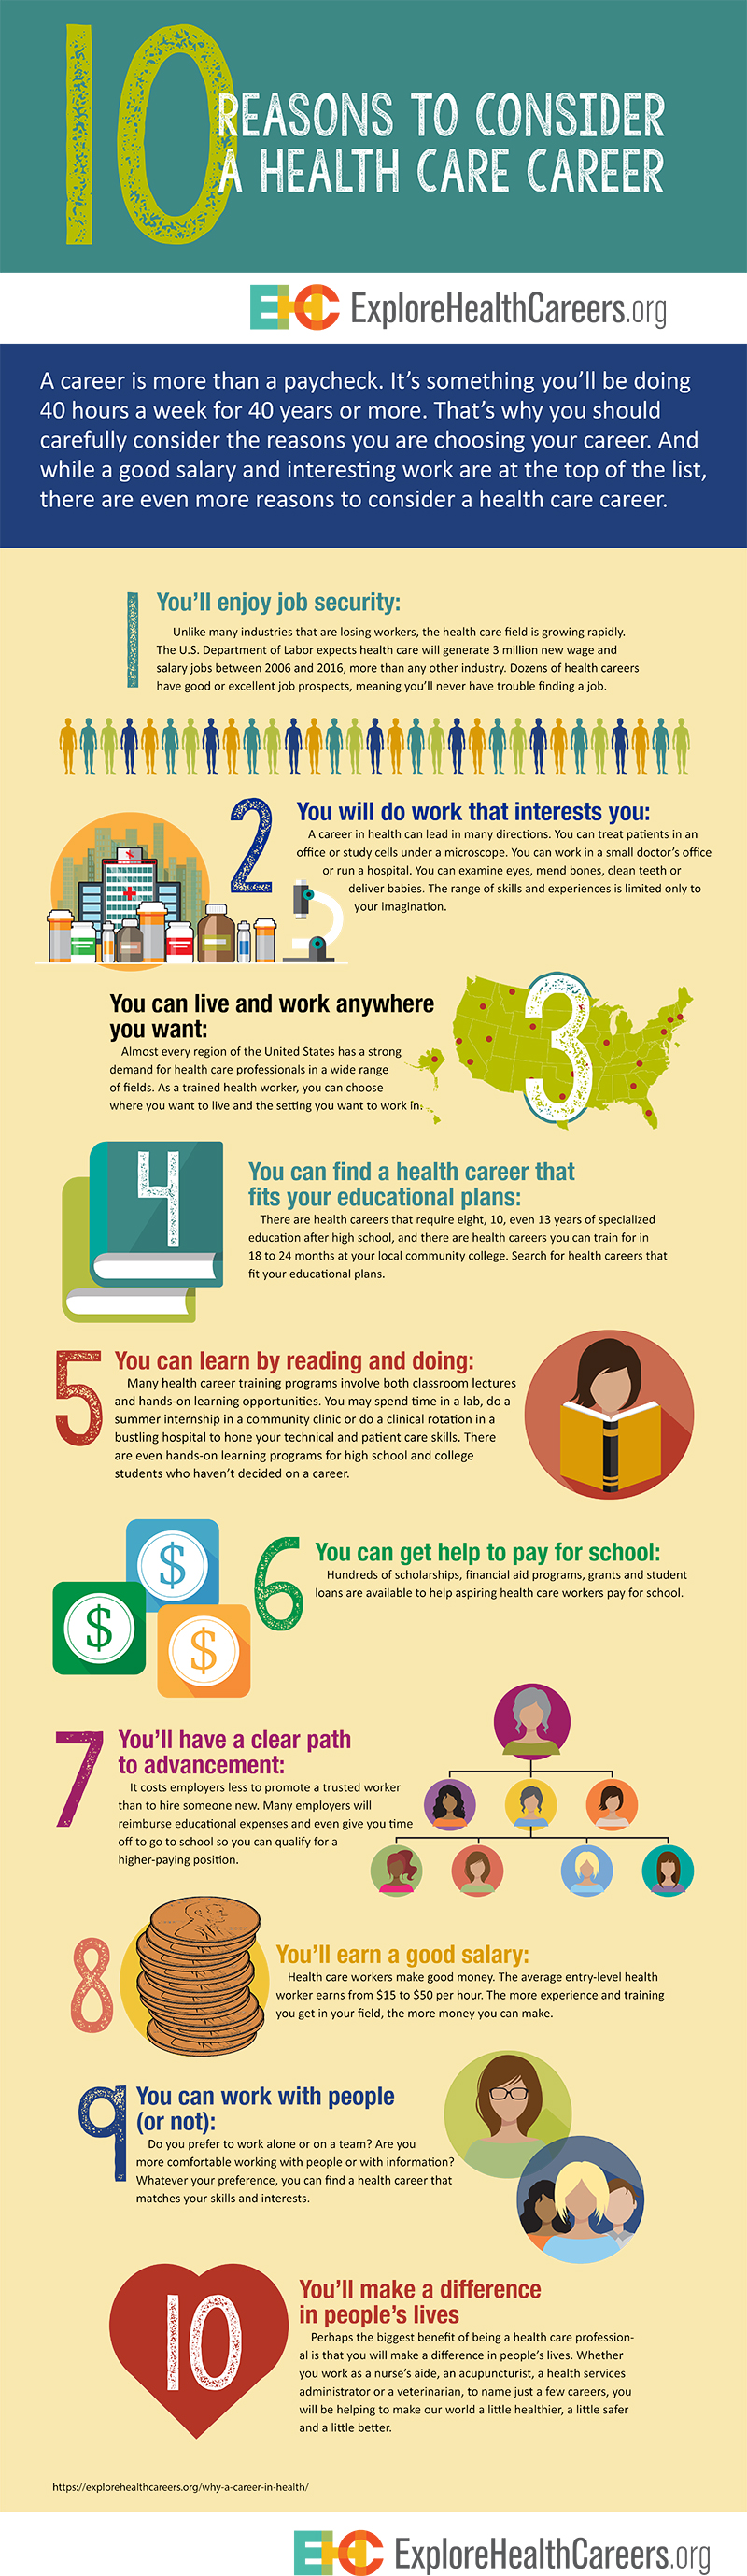 10 Reasons To Pursue A Health Career A Career Is More Than A Paycheck It S Something You Ll Be Doing 40 Hours A Week F Health Careers Job Security Health Care